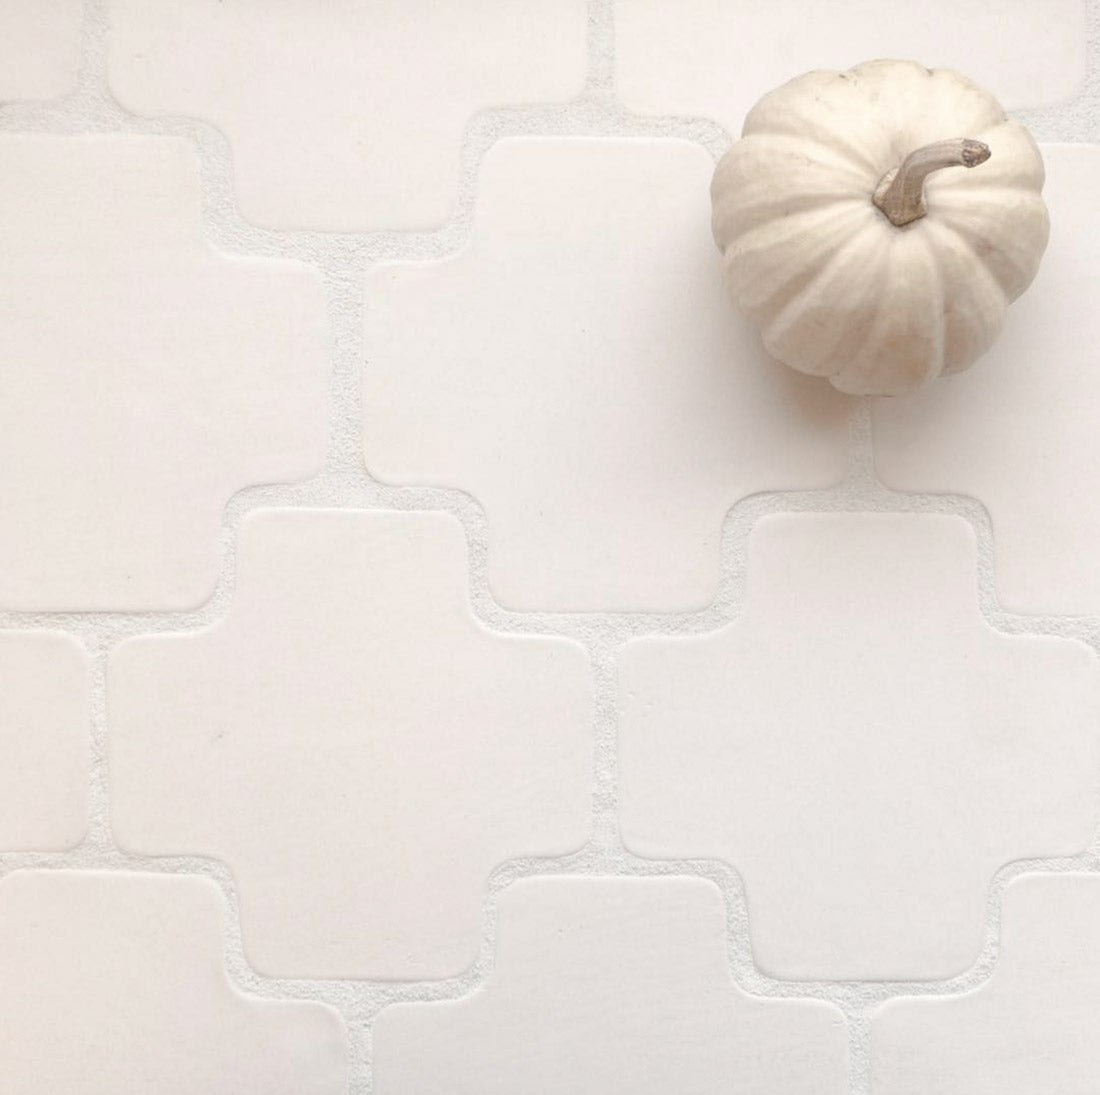 Halloween-Tile-Design-1031 Spellbinding Tile Designs All Kitchens Residential Tile Inspiration   Moroccan-Cross-301-Marshmallow Spellbinding Tile Designs All Kitchens Residential Tile Inspiration